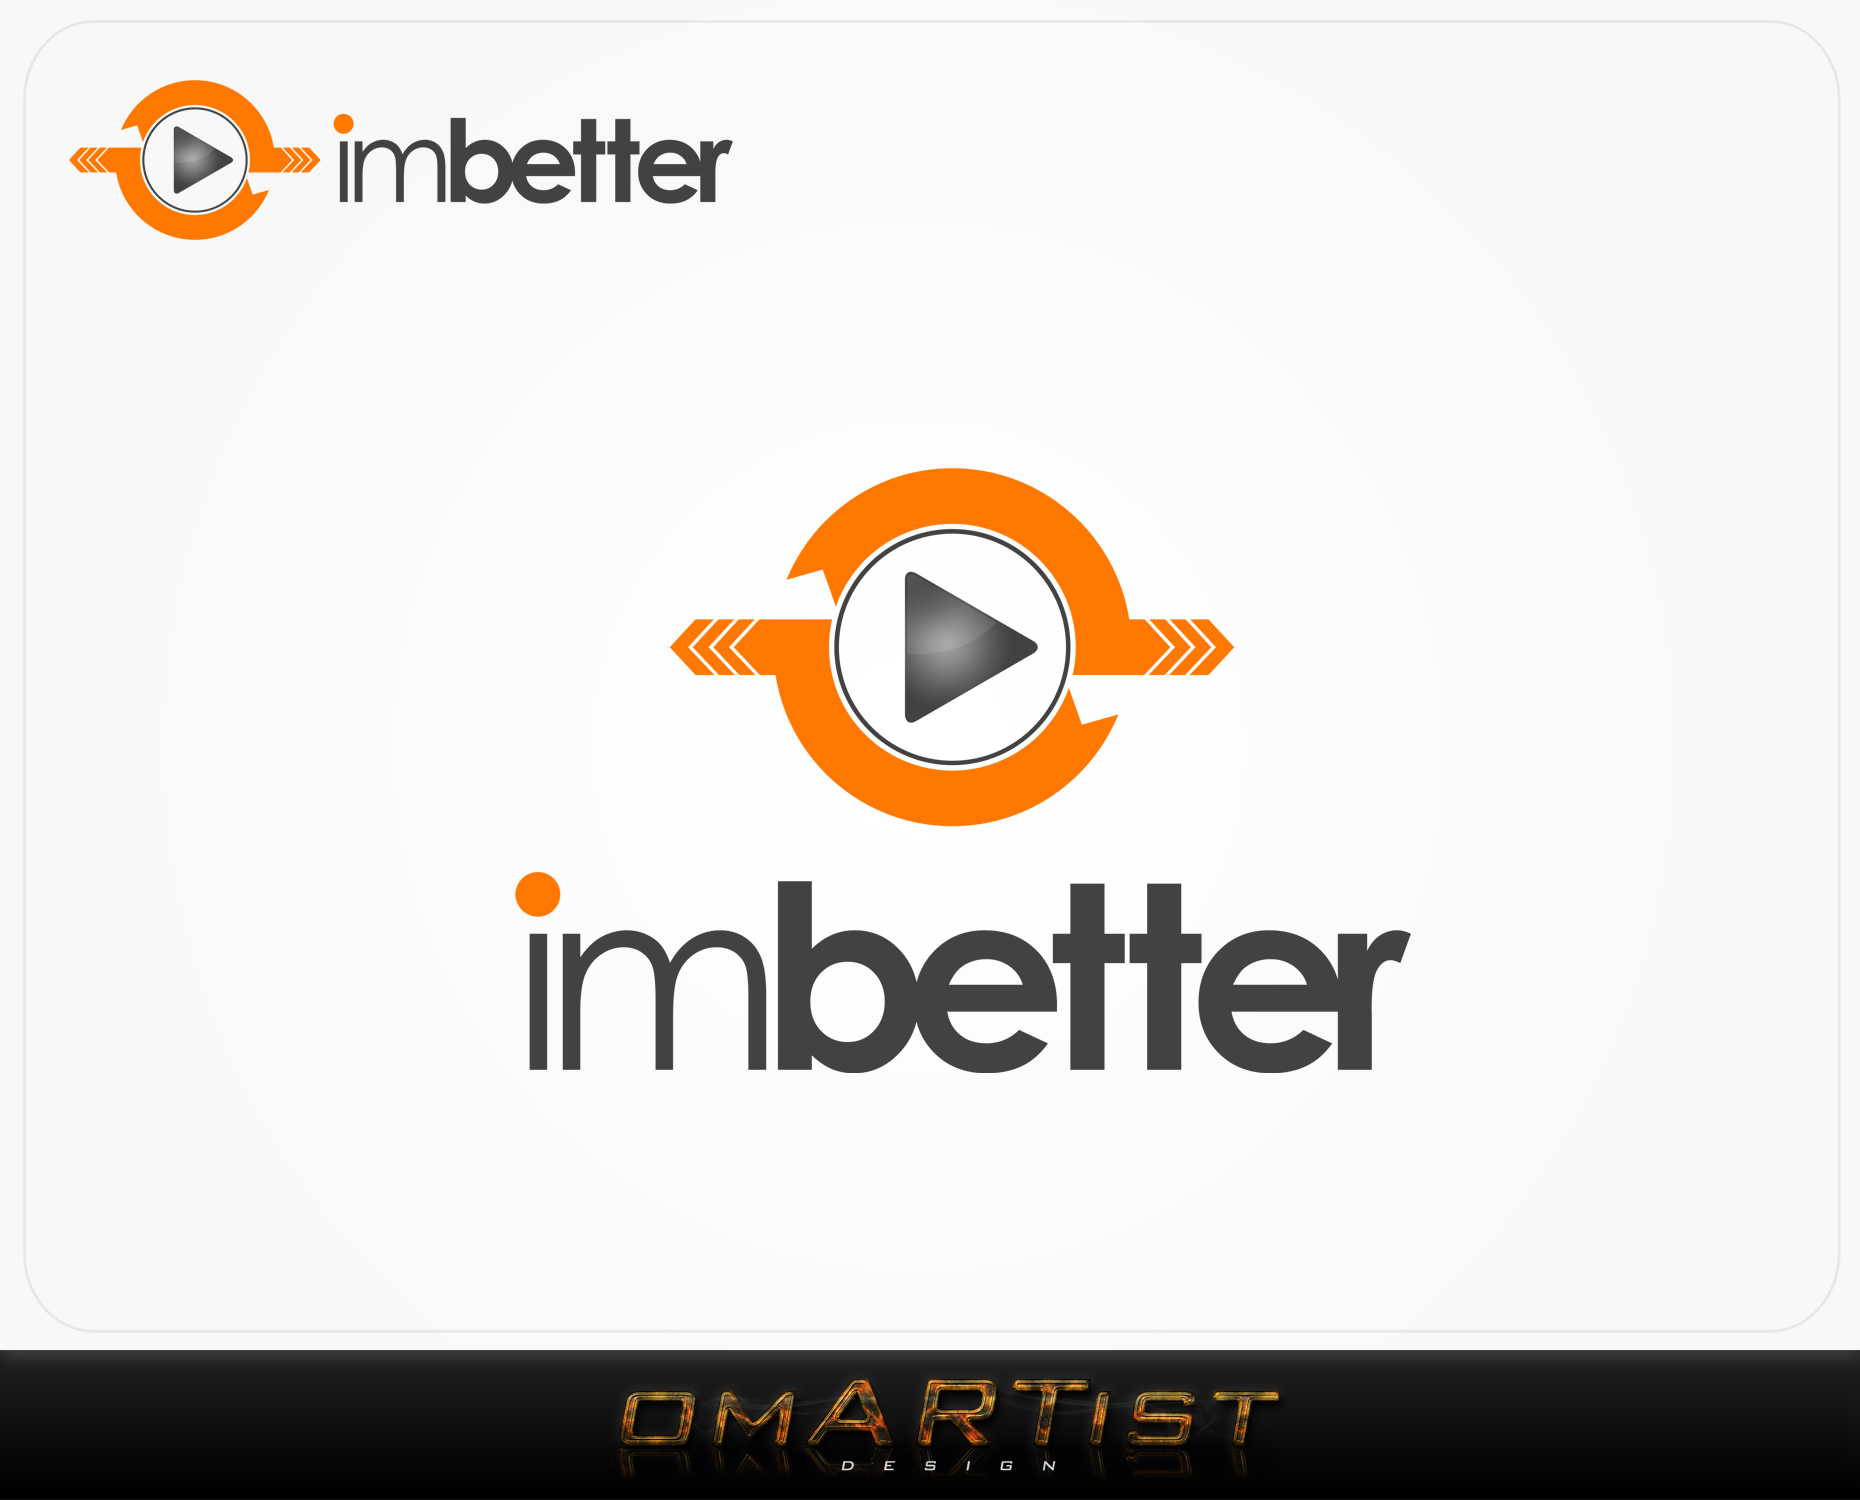 Logo Design by omARTist - Entry No. 17 in the Logo Design Contest Imaginative Logo Design for imbetter.